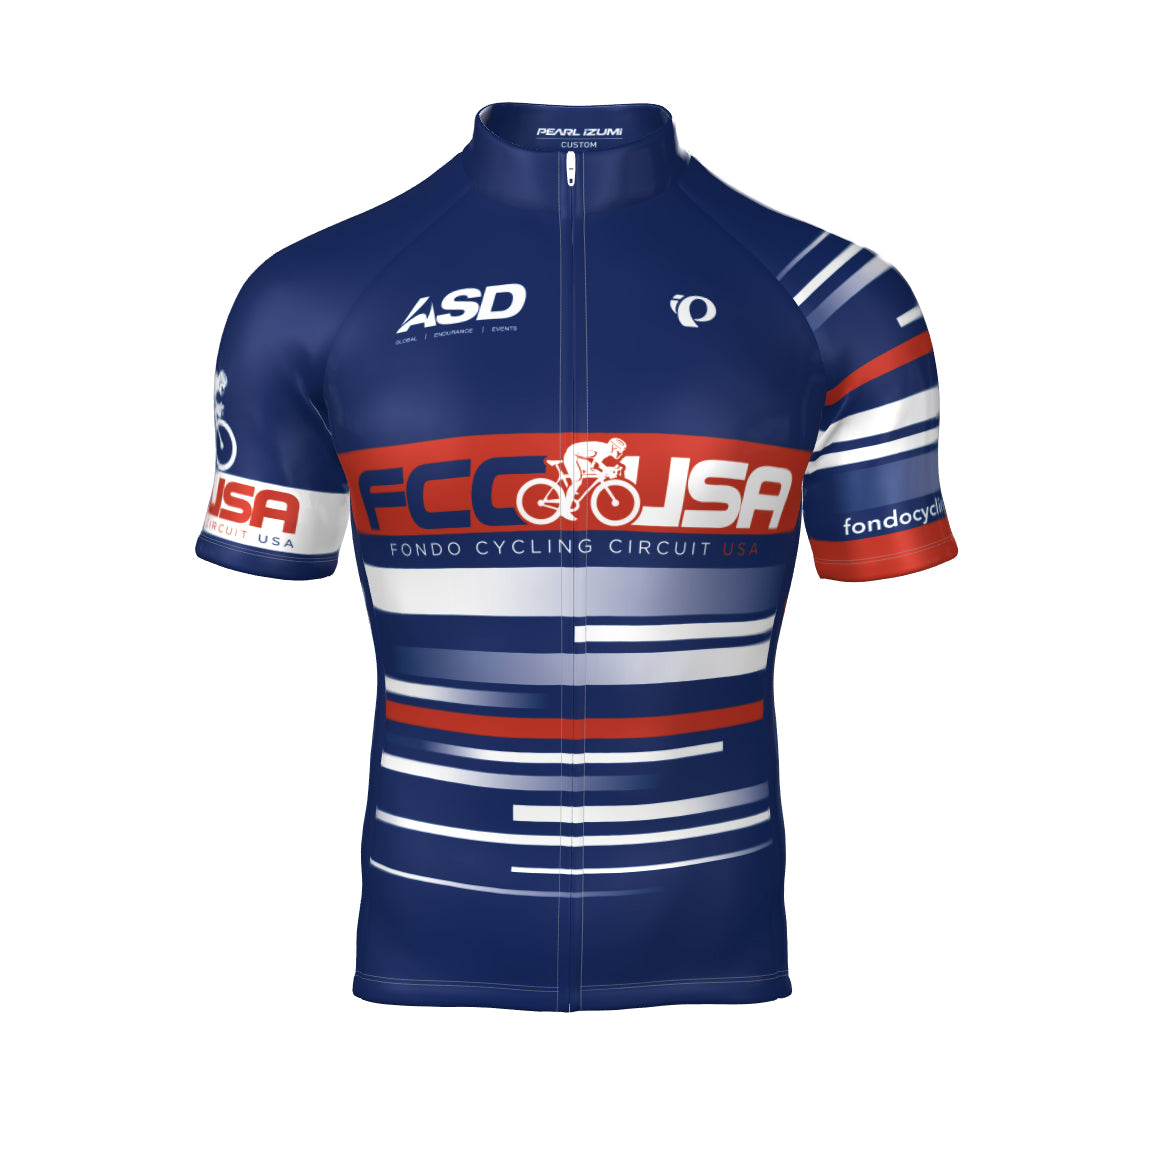 Fondo Cycling Circuit USA Jerseys